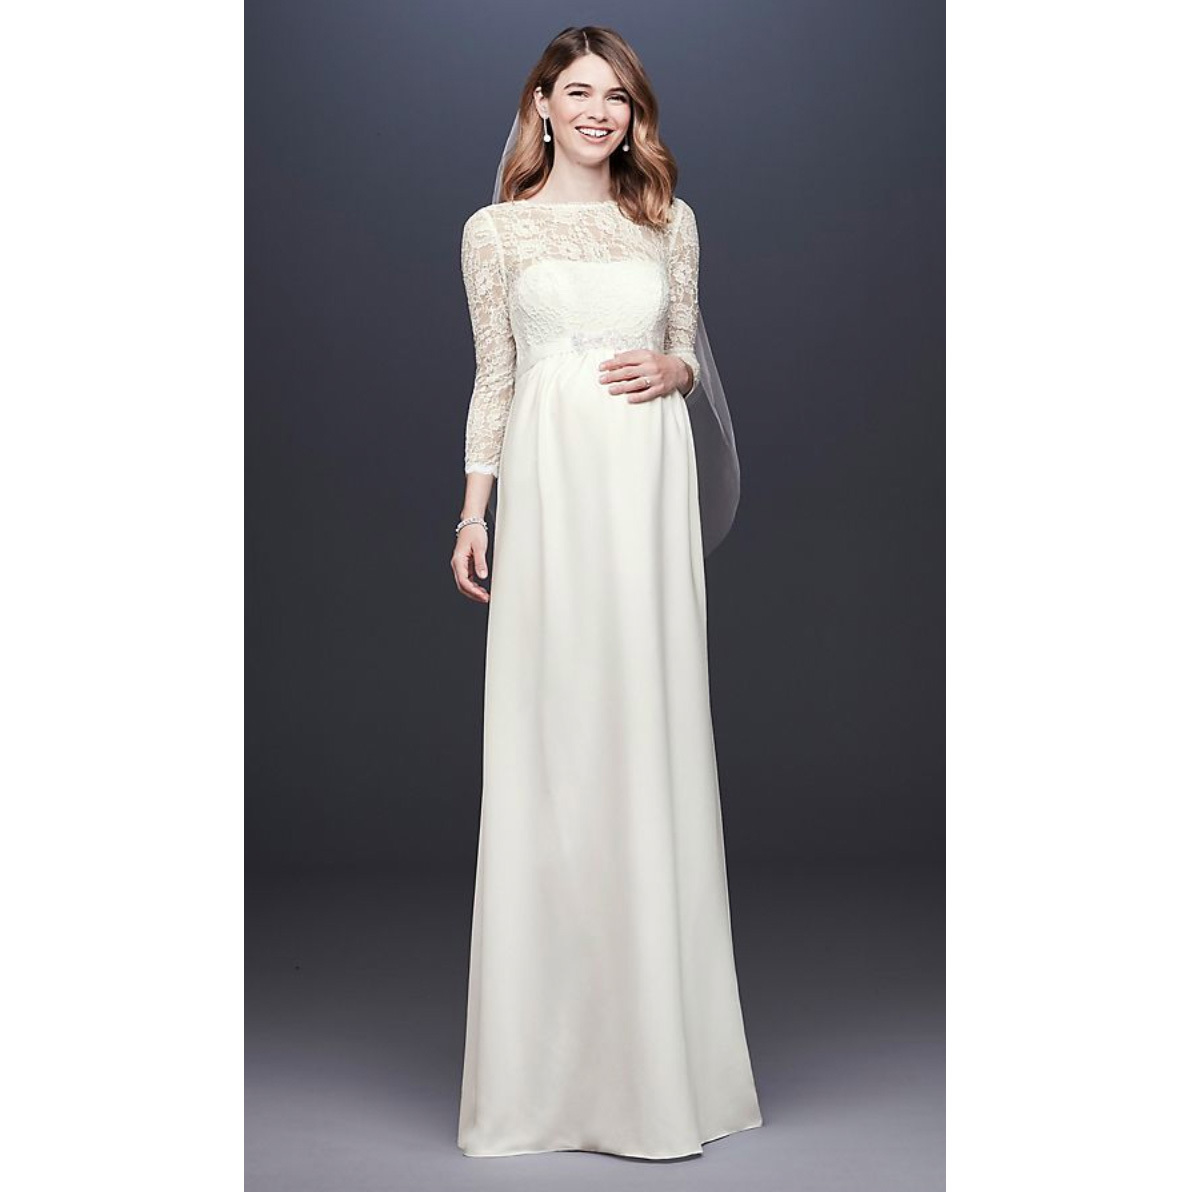 Model in David's Bridal Collection 3/4 Sleeve Crepe Sheath Maternity Wedding Dress photo